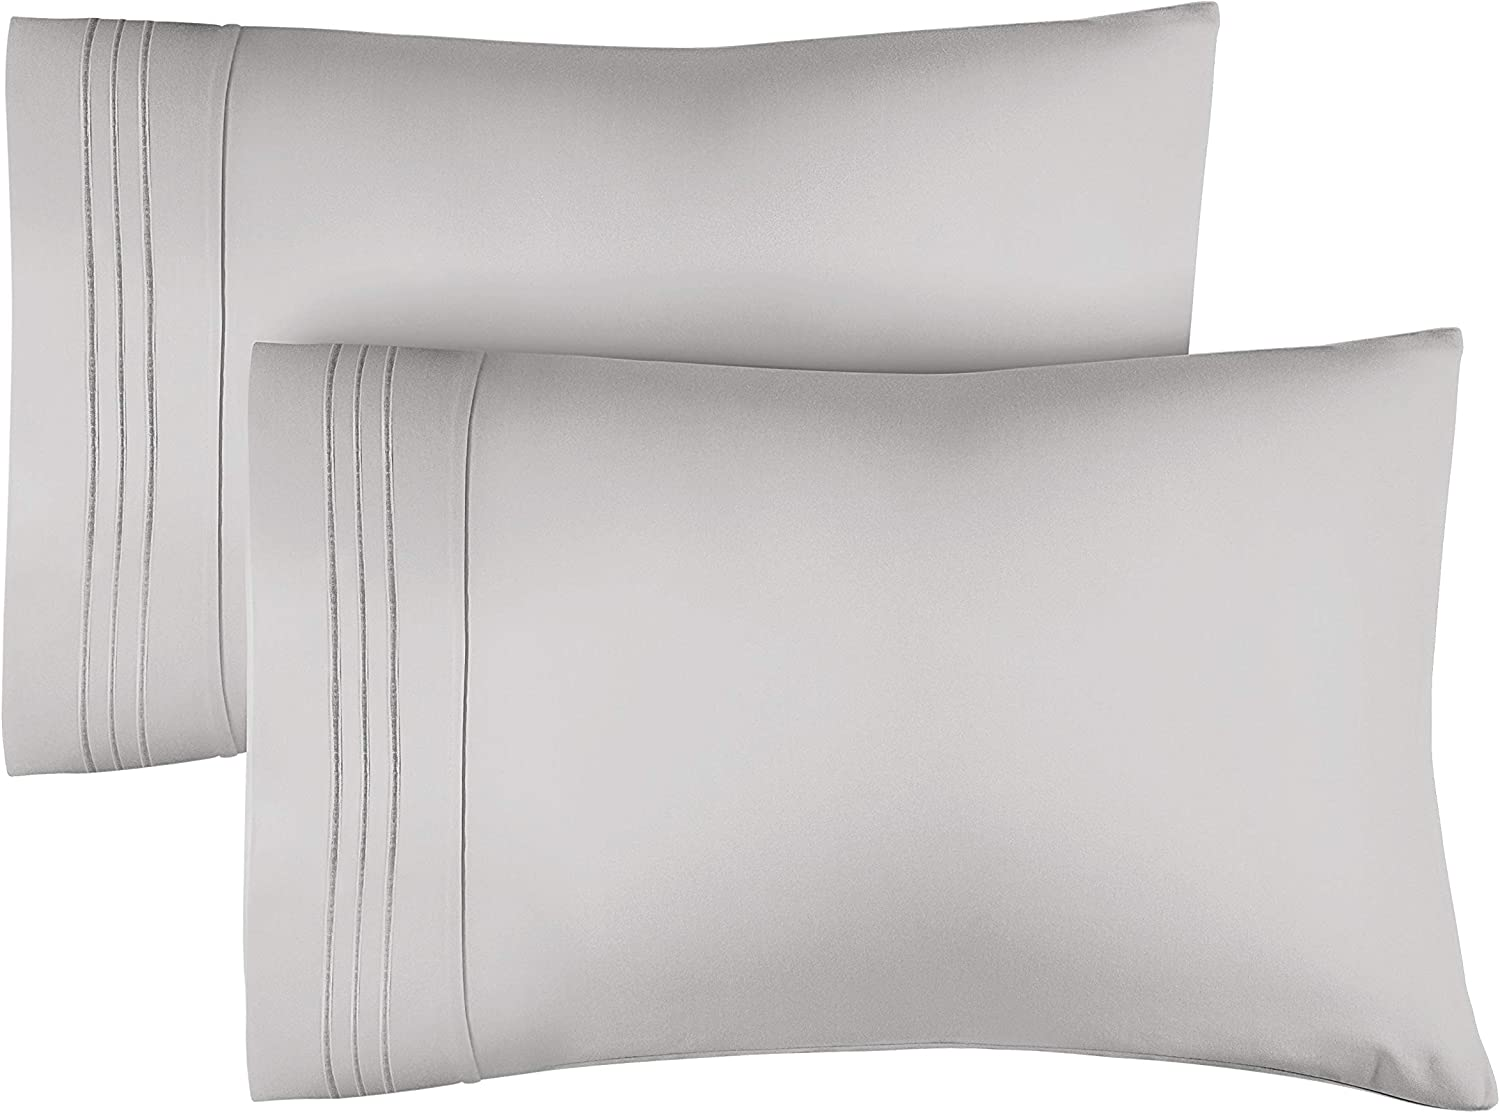 Queen Size Pillow Cases Set of 2 – Soft, Premium Quality Pillowcase Covers – Machine Washable Protectors – 20x26 & 20x30 Pillows for Sleeping 2 Piece - Queen Size Pillow Case Set